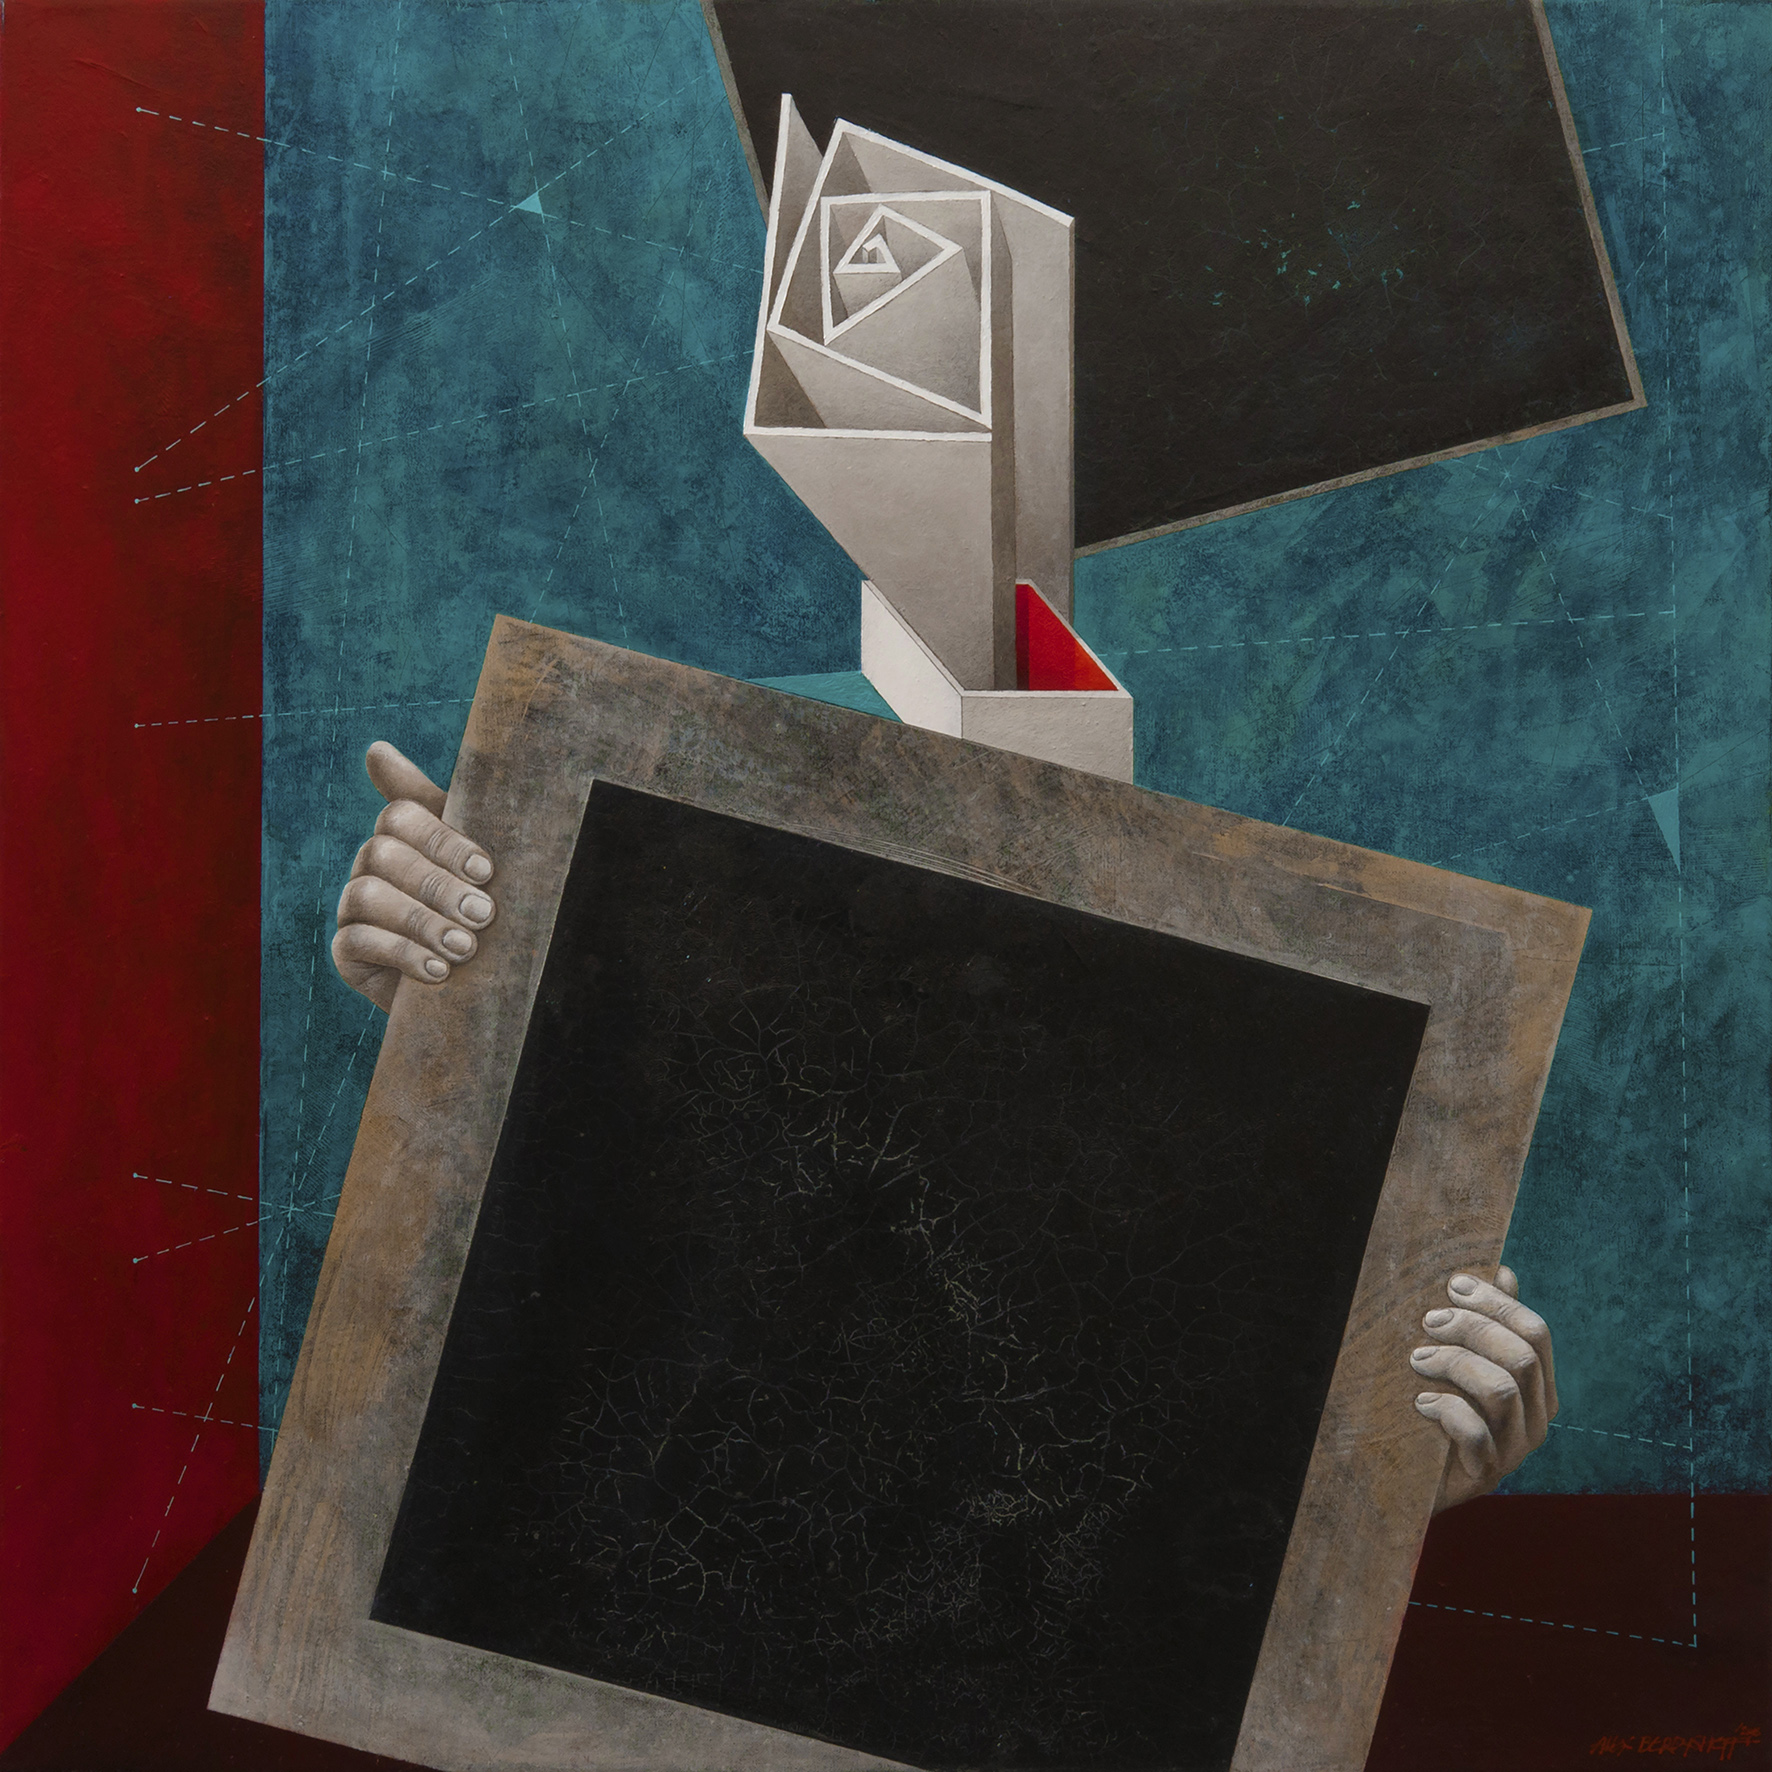 Black Square Presentation, oil on canvas, 85x85 cm, 2016